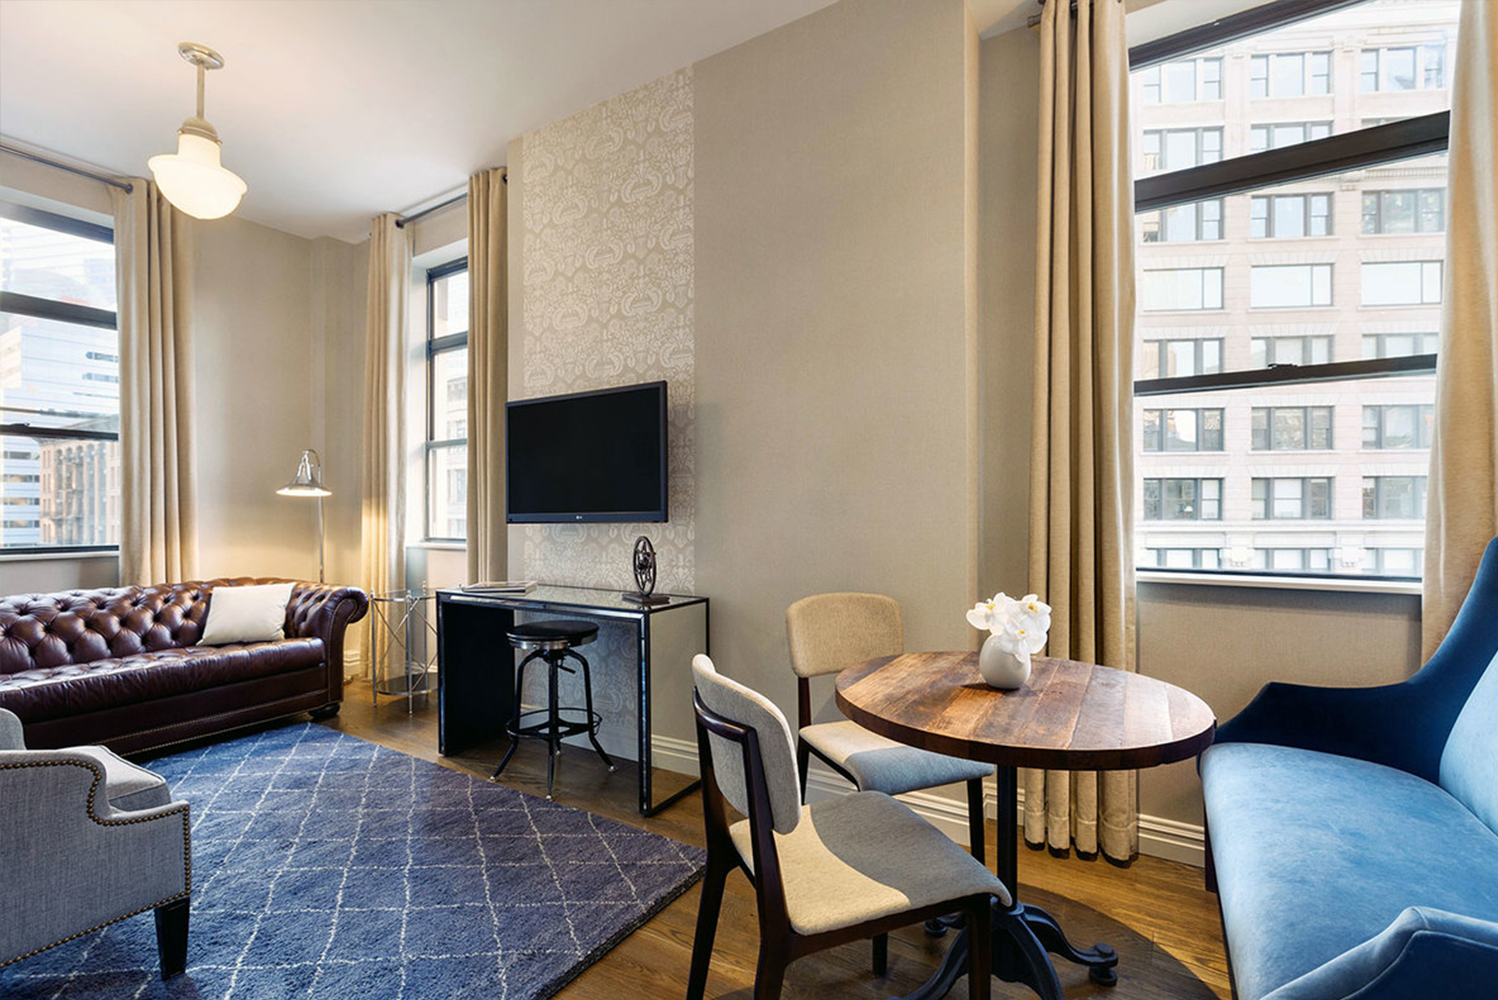 Triumph Hotels, a collection of Manhattan hotels, introduced the newly remodeled and reimagined Frederick Hotel in Tribeca.